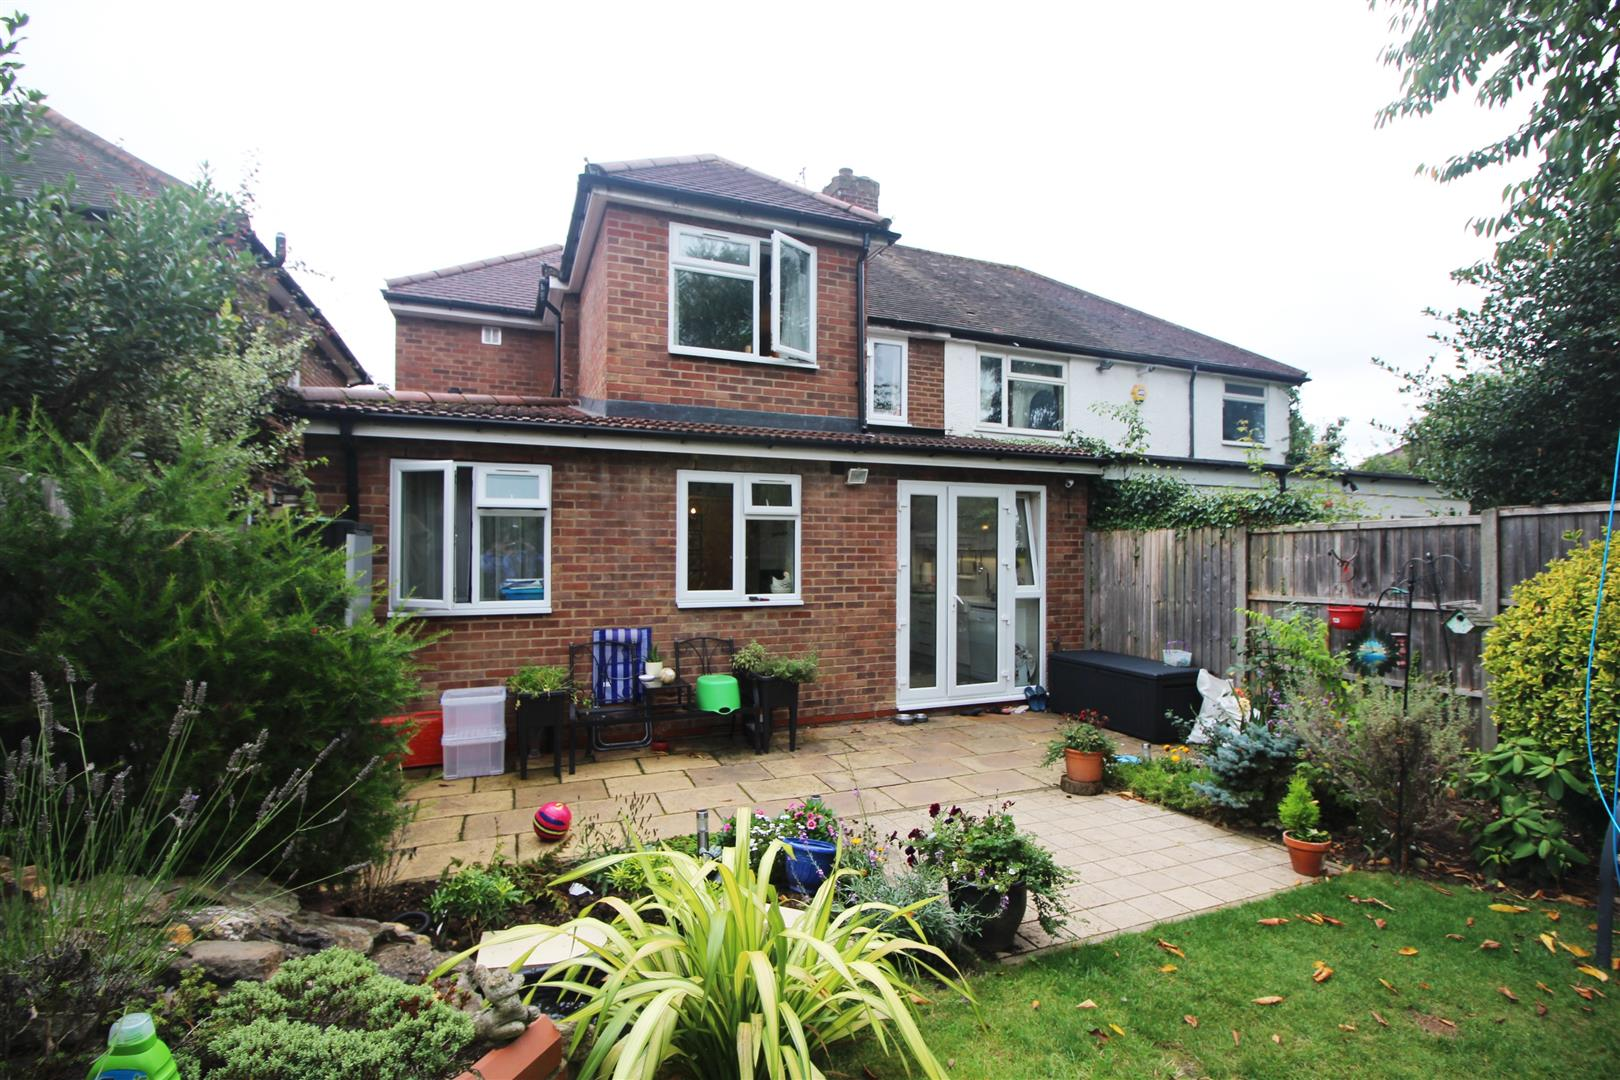 4 Bedroom Semi Detached House For Sale In Edgware